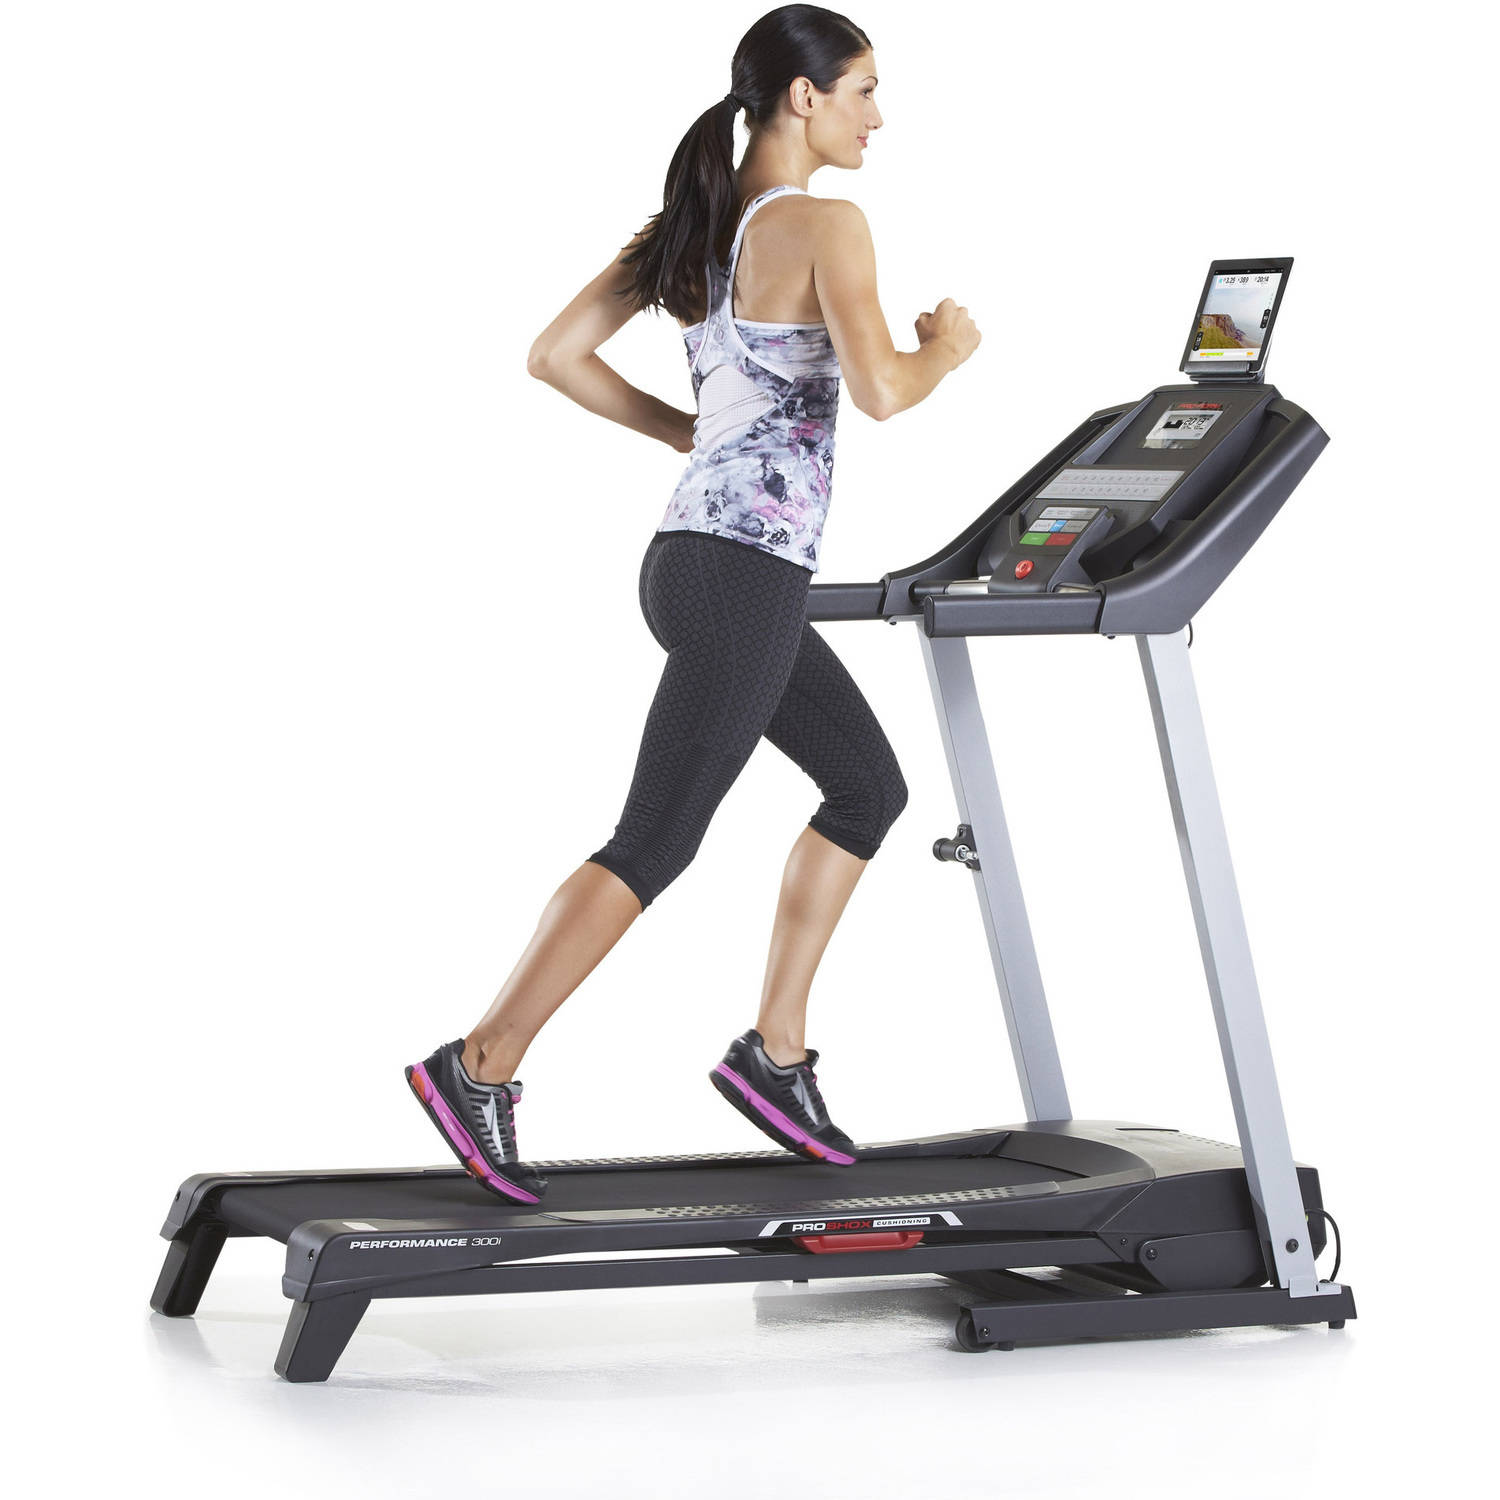 ProForm Performance 300i Treadmill, Powered by iFit